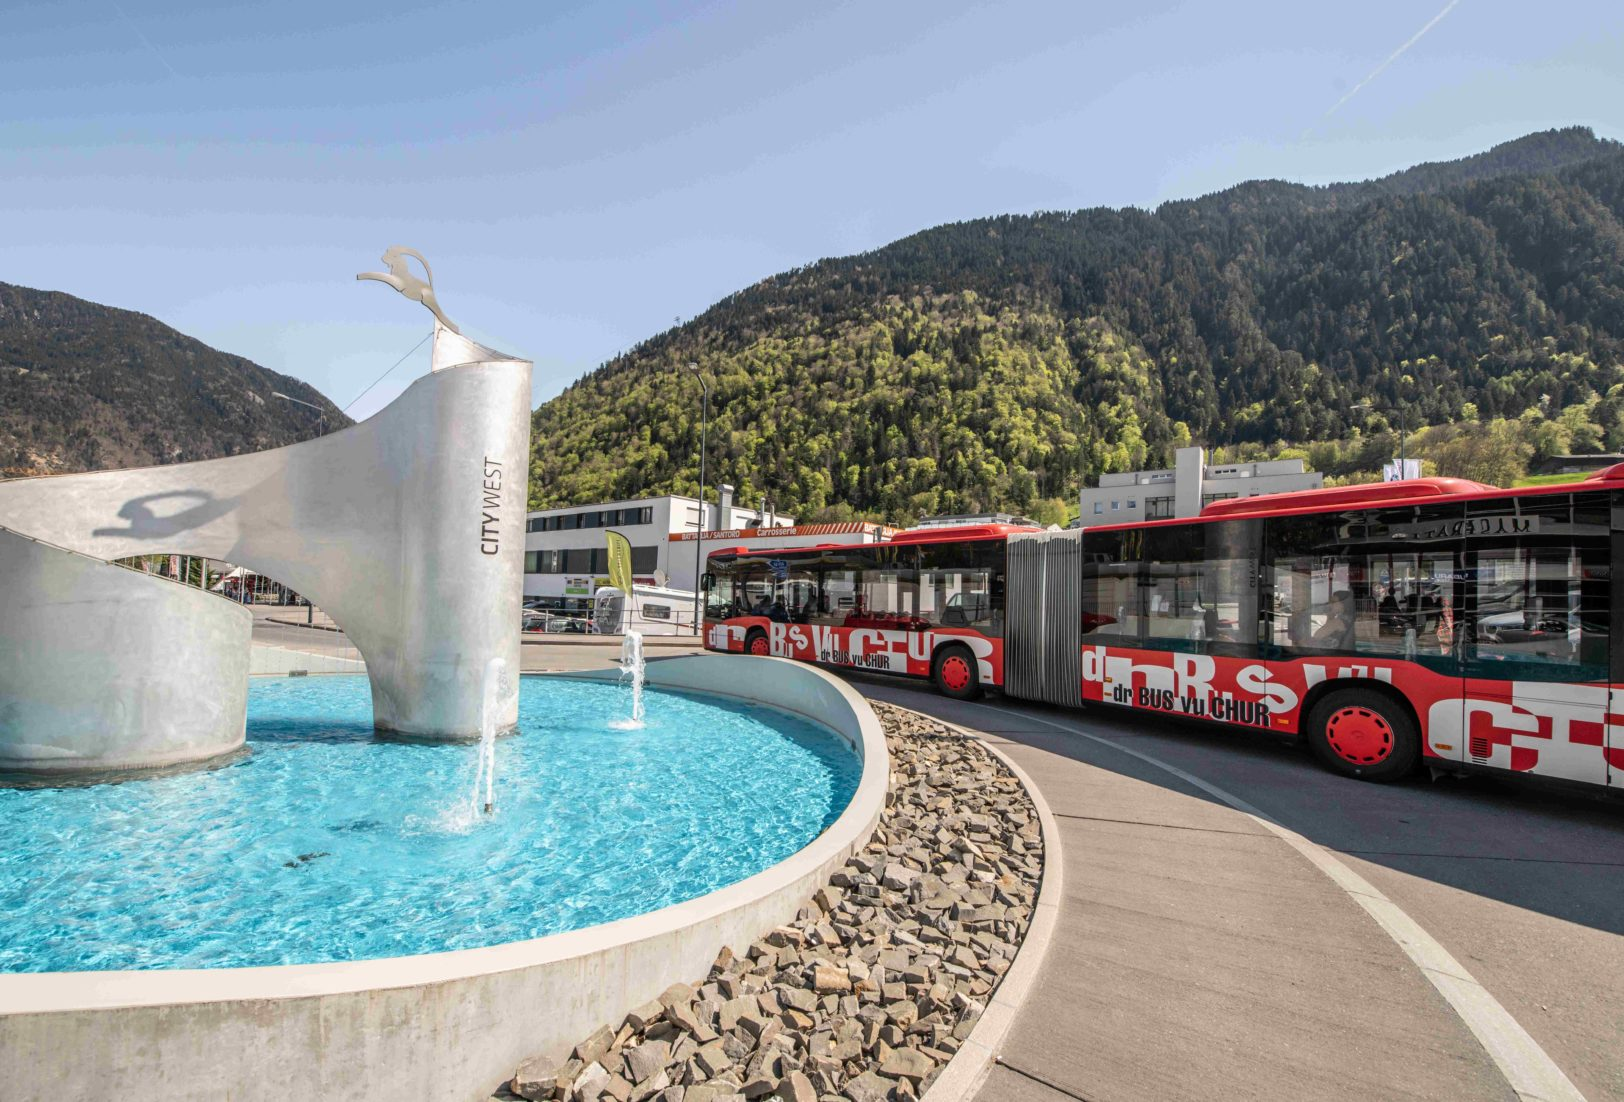 Chur Bus beim City West Kreisel